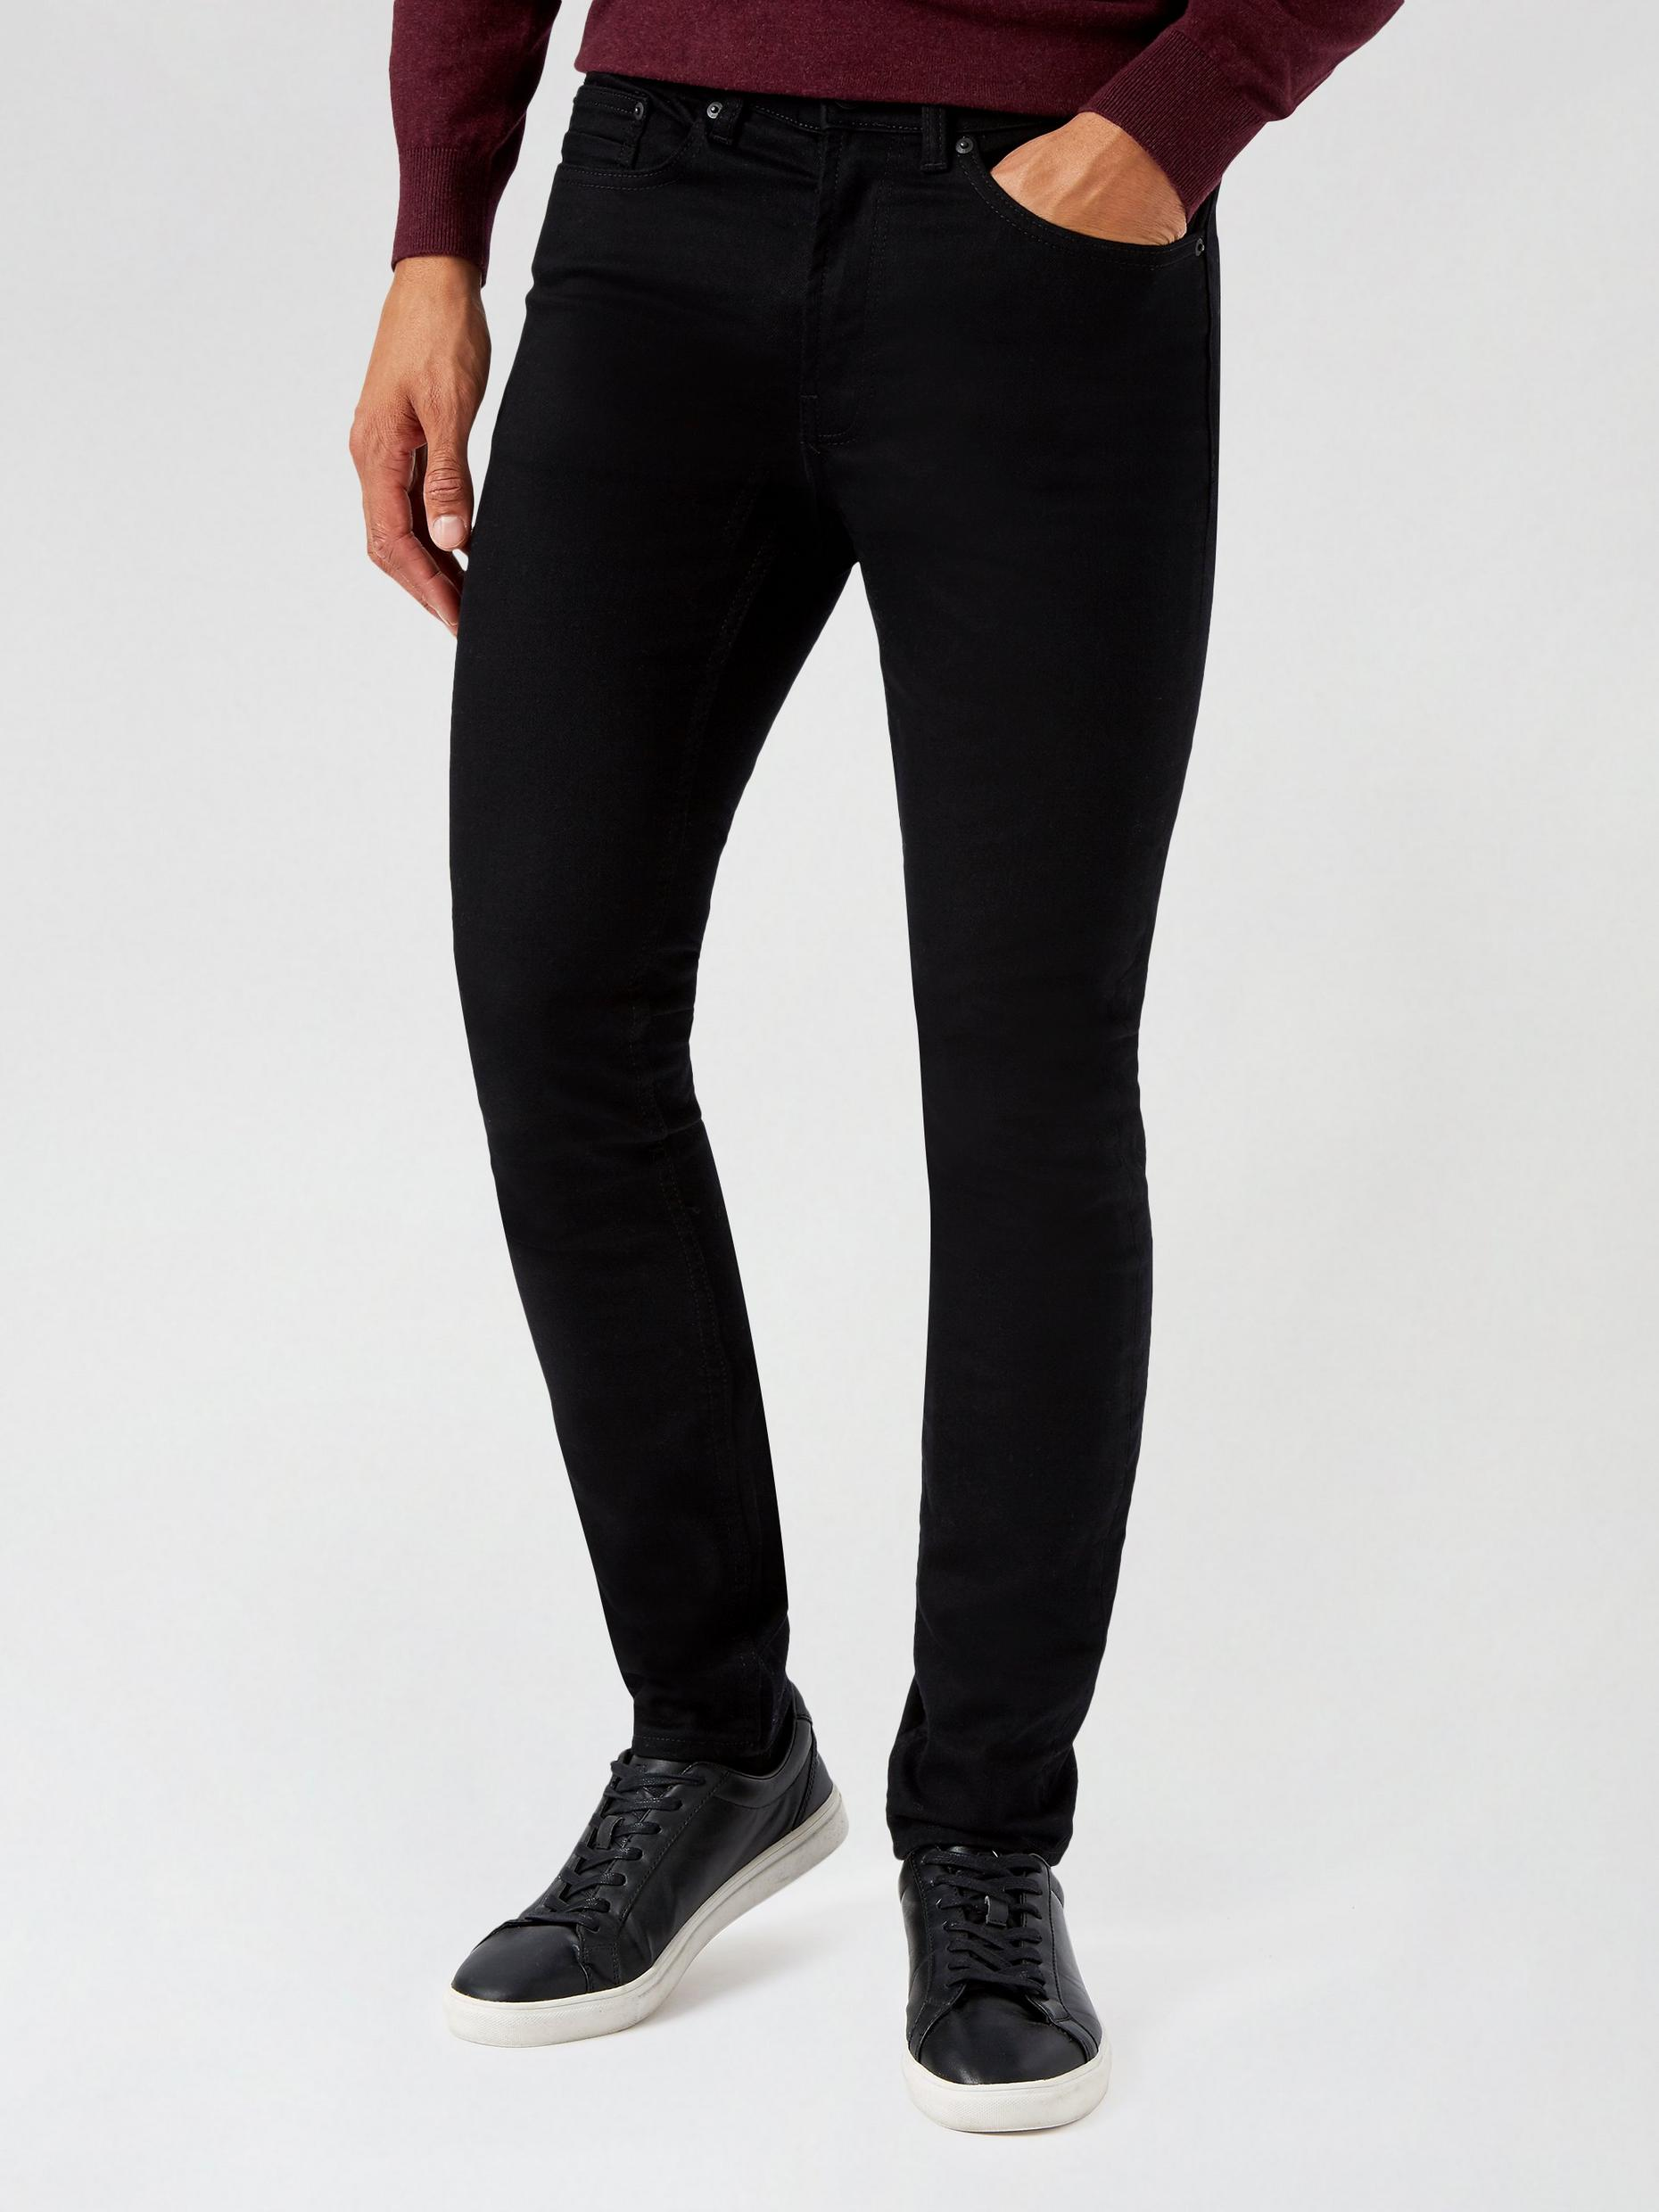 Black Skinny Jeans With Organic Cotton